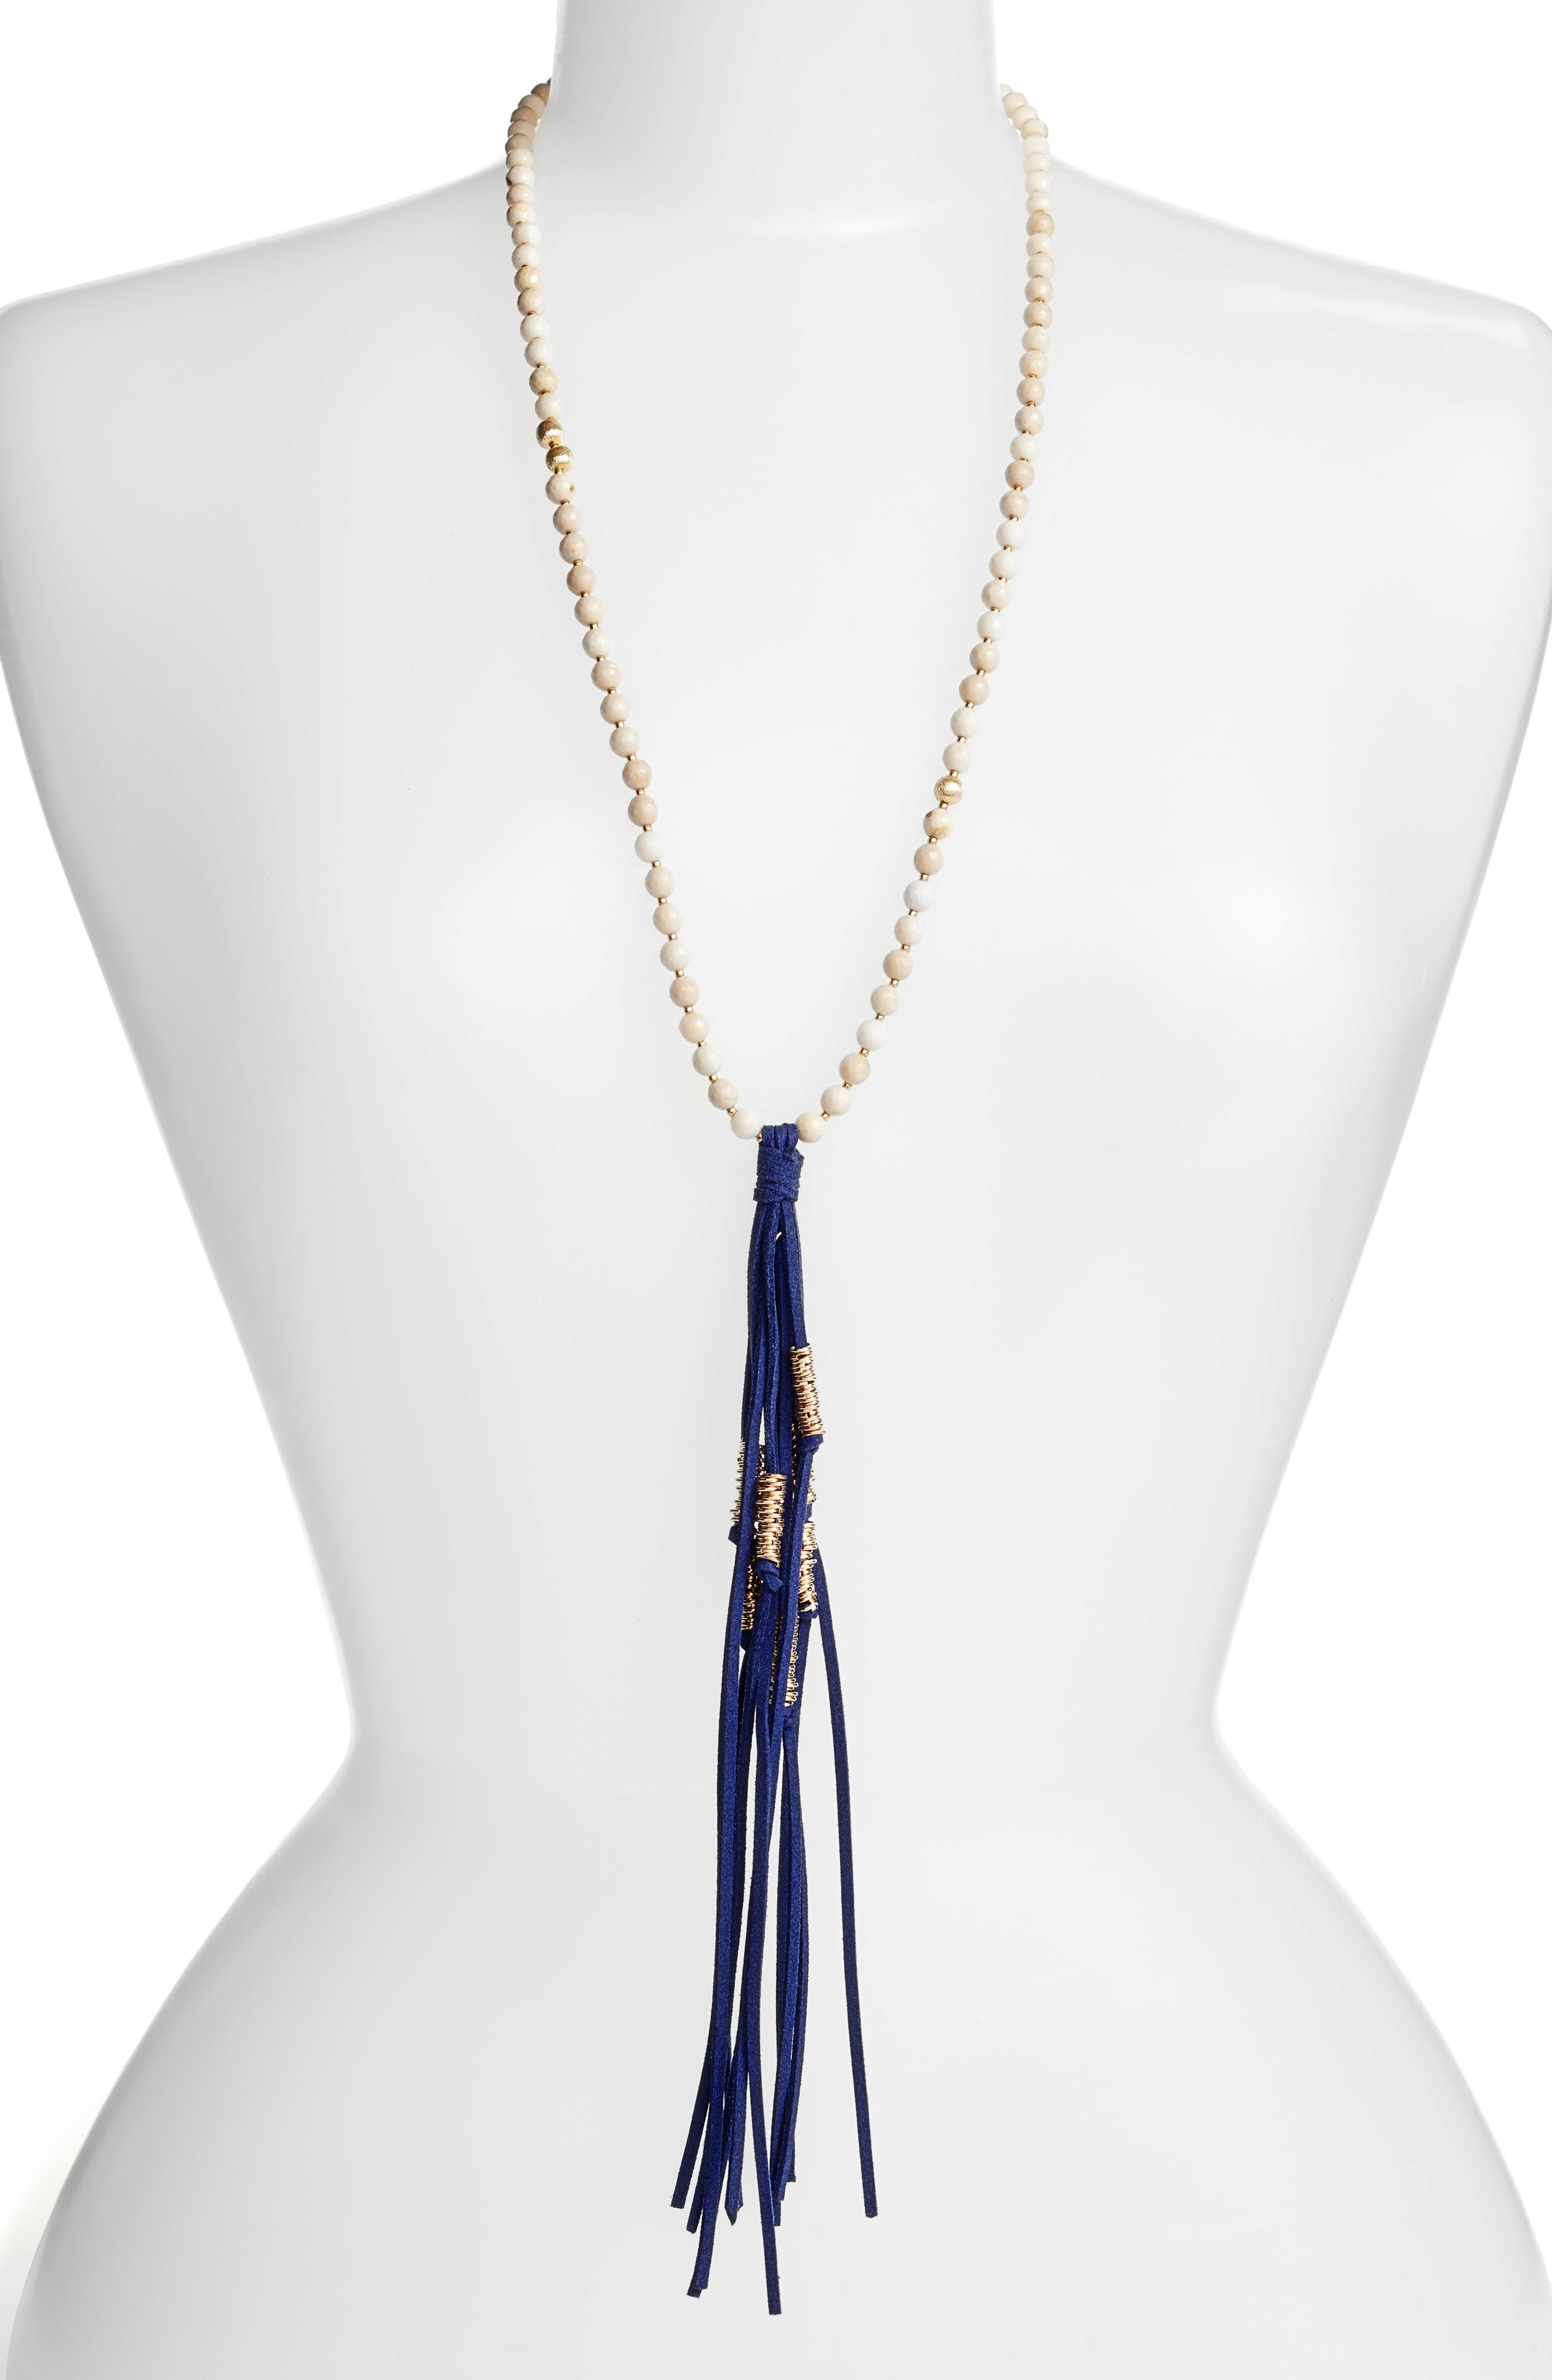 Main Image - Love's Affect Semiprecious Stone Tassel Necklace